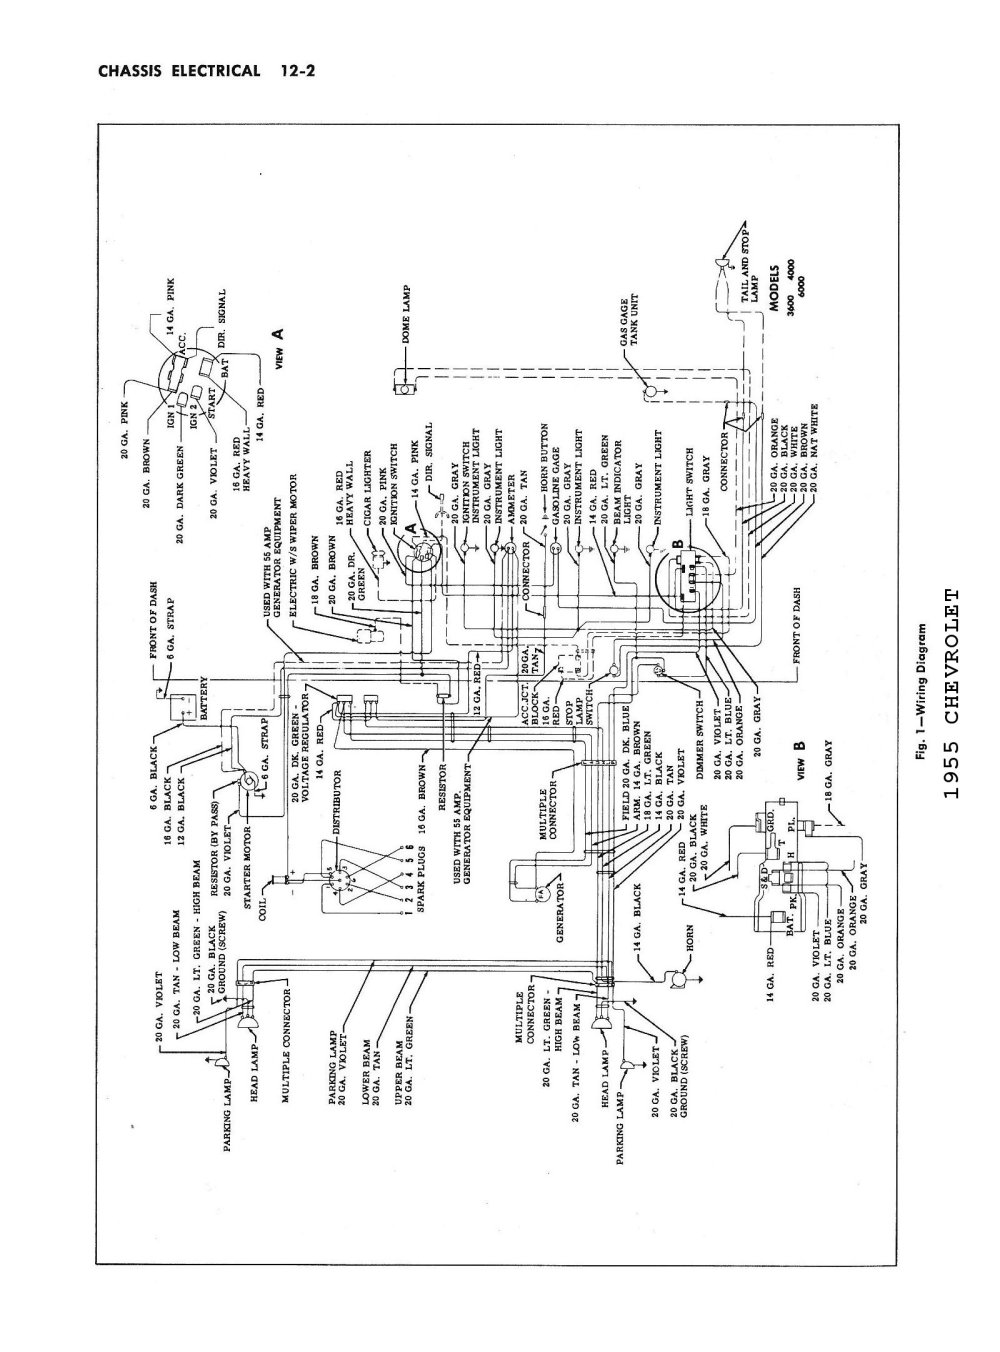 medium resolution of chevy wiring diagrams1957 chevy wiring 5